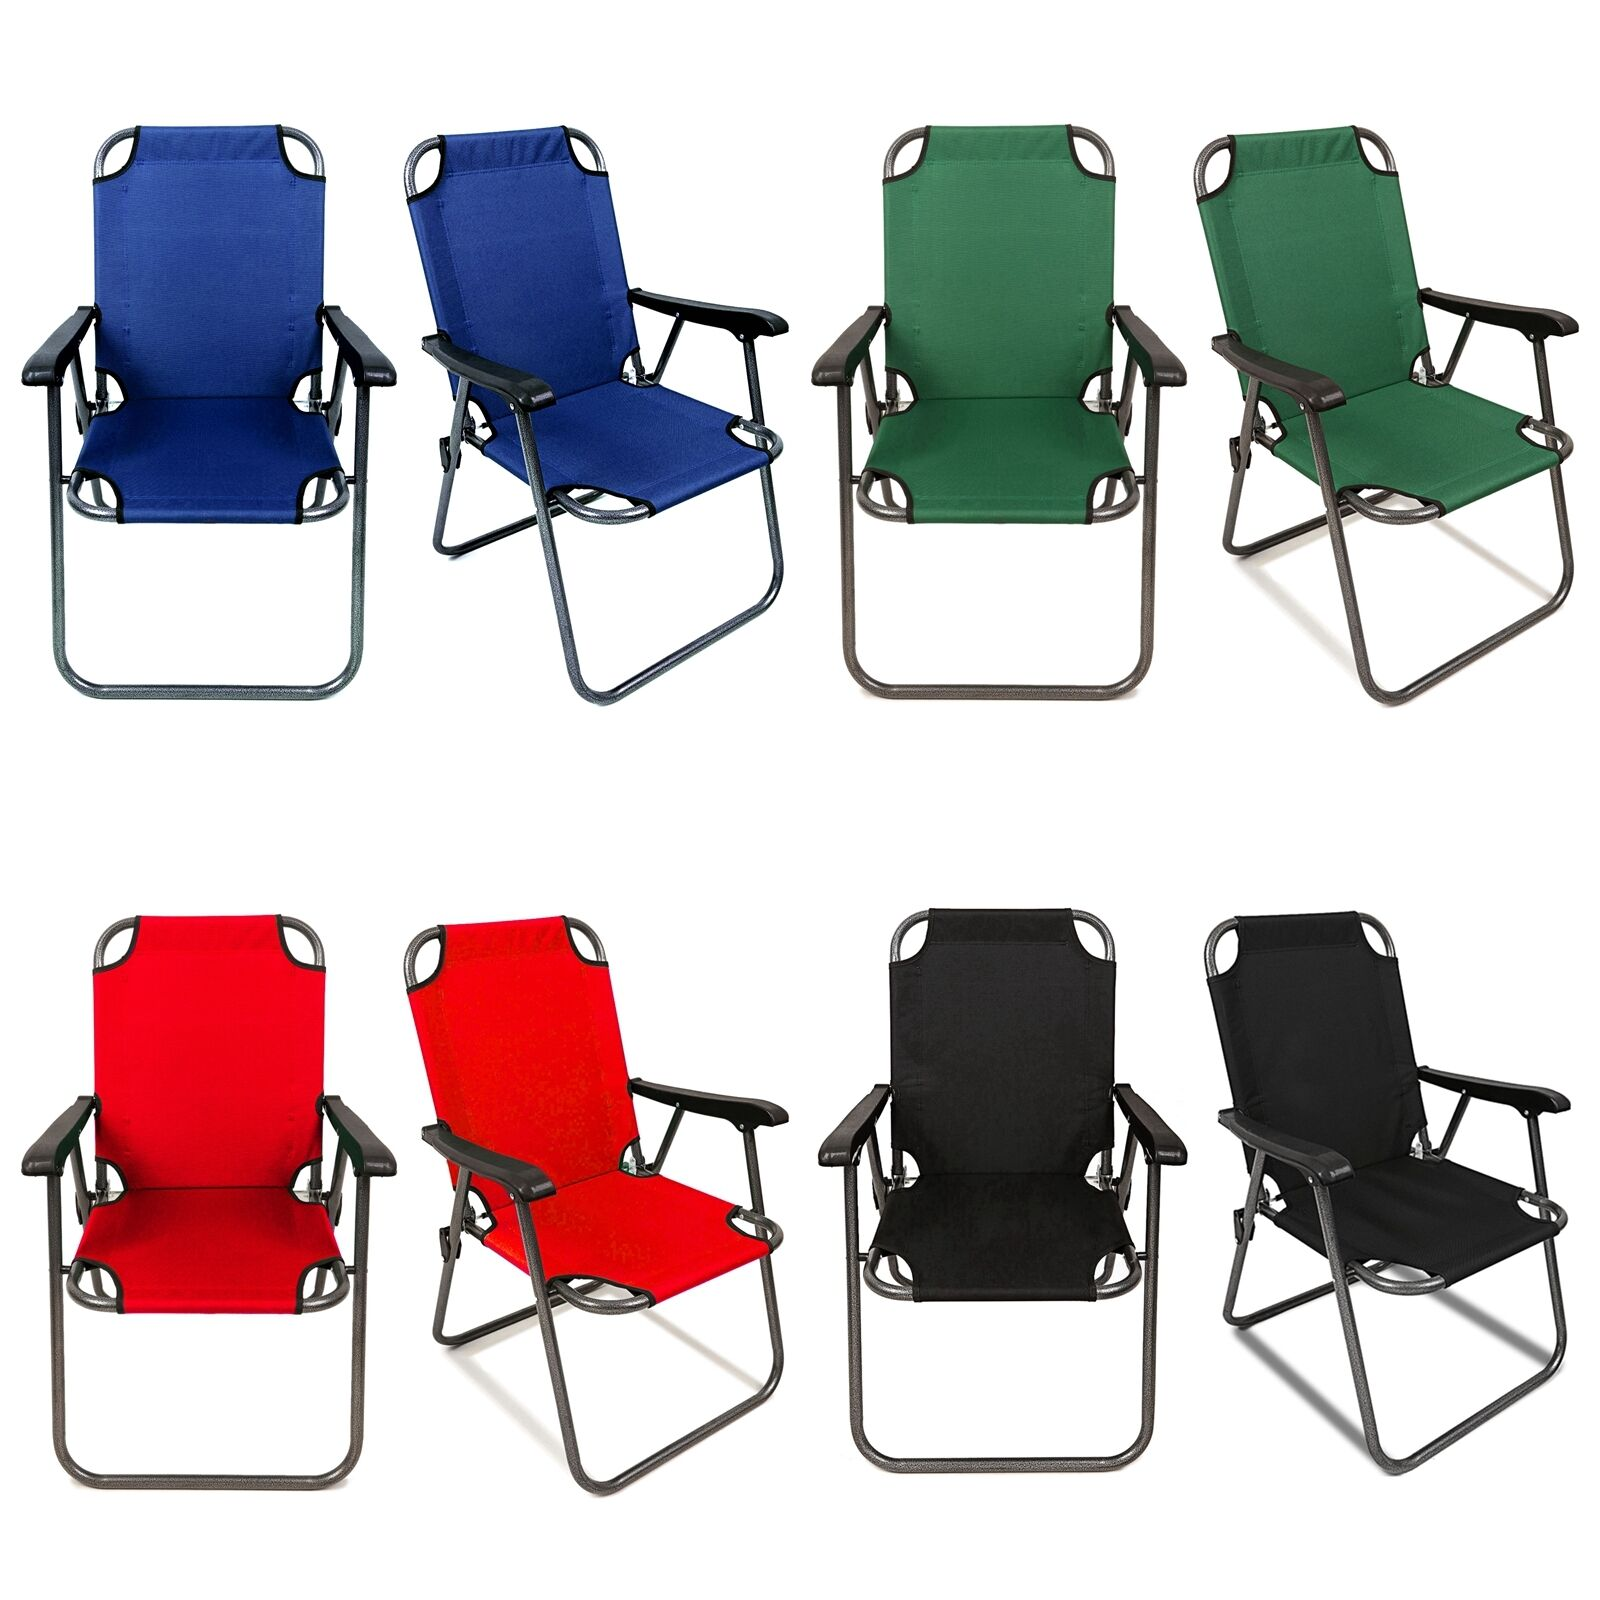 2 Portable Folding Chair Beach Lightweight Travel Patio Outdoor Sport Yard